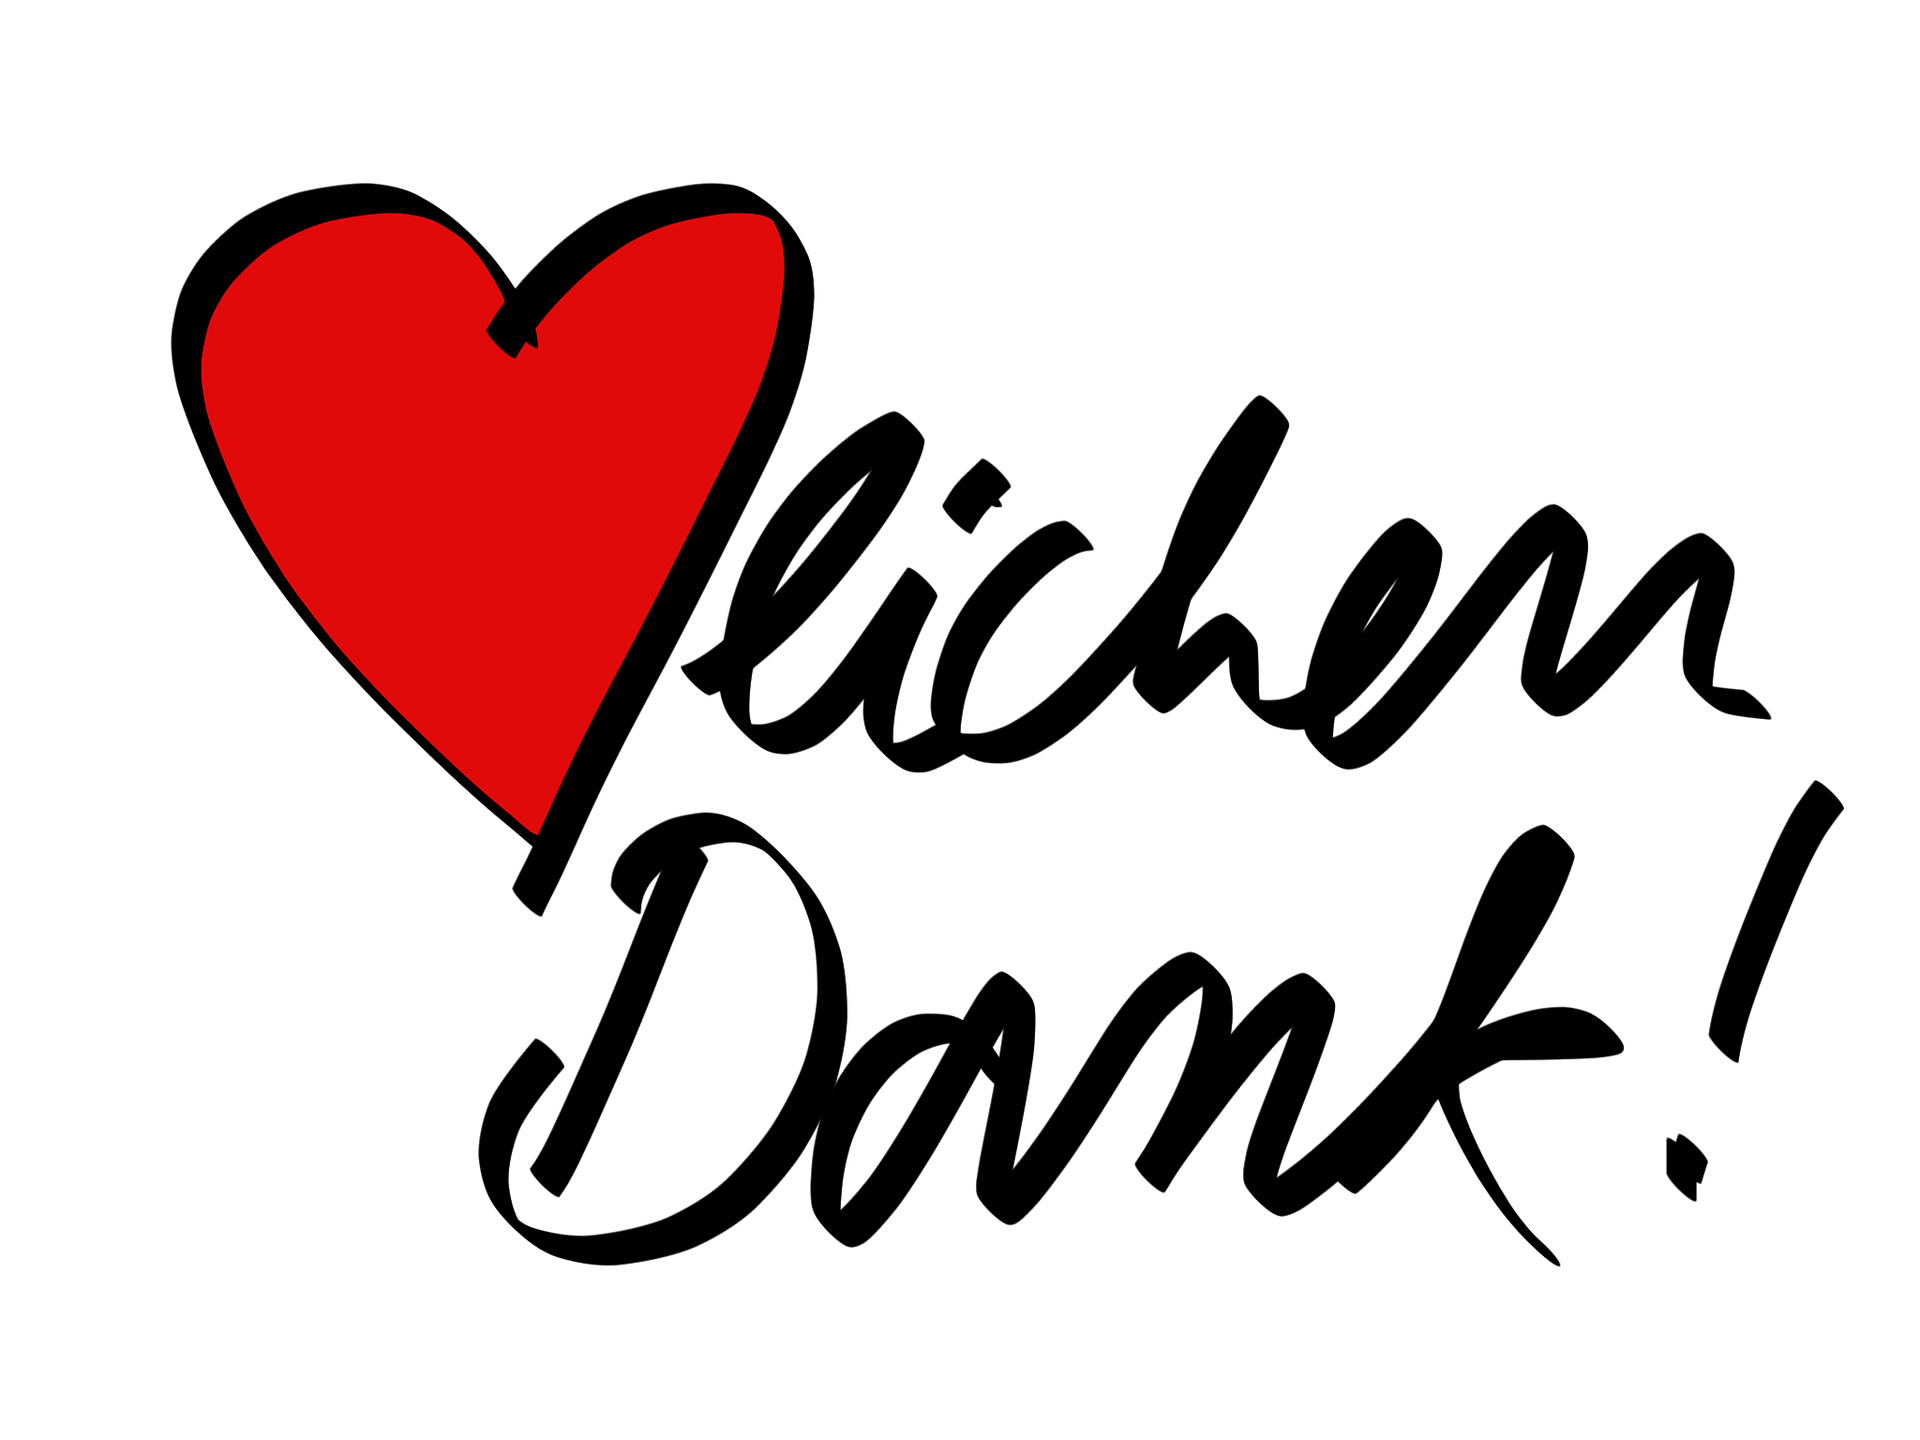 heart-184572-1920.png